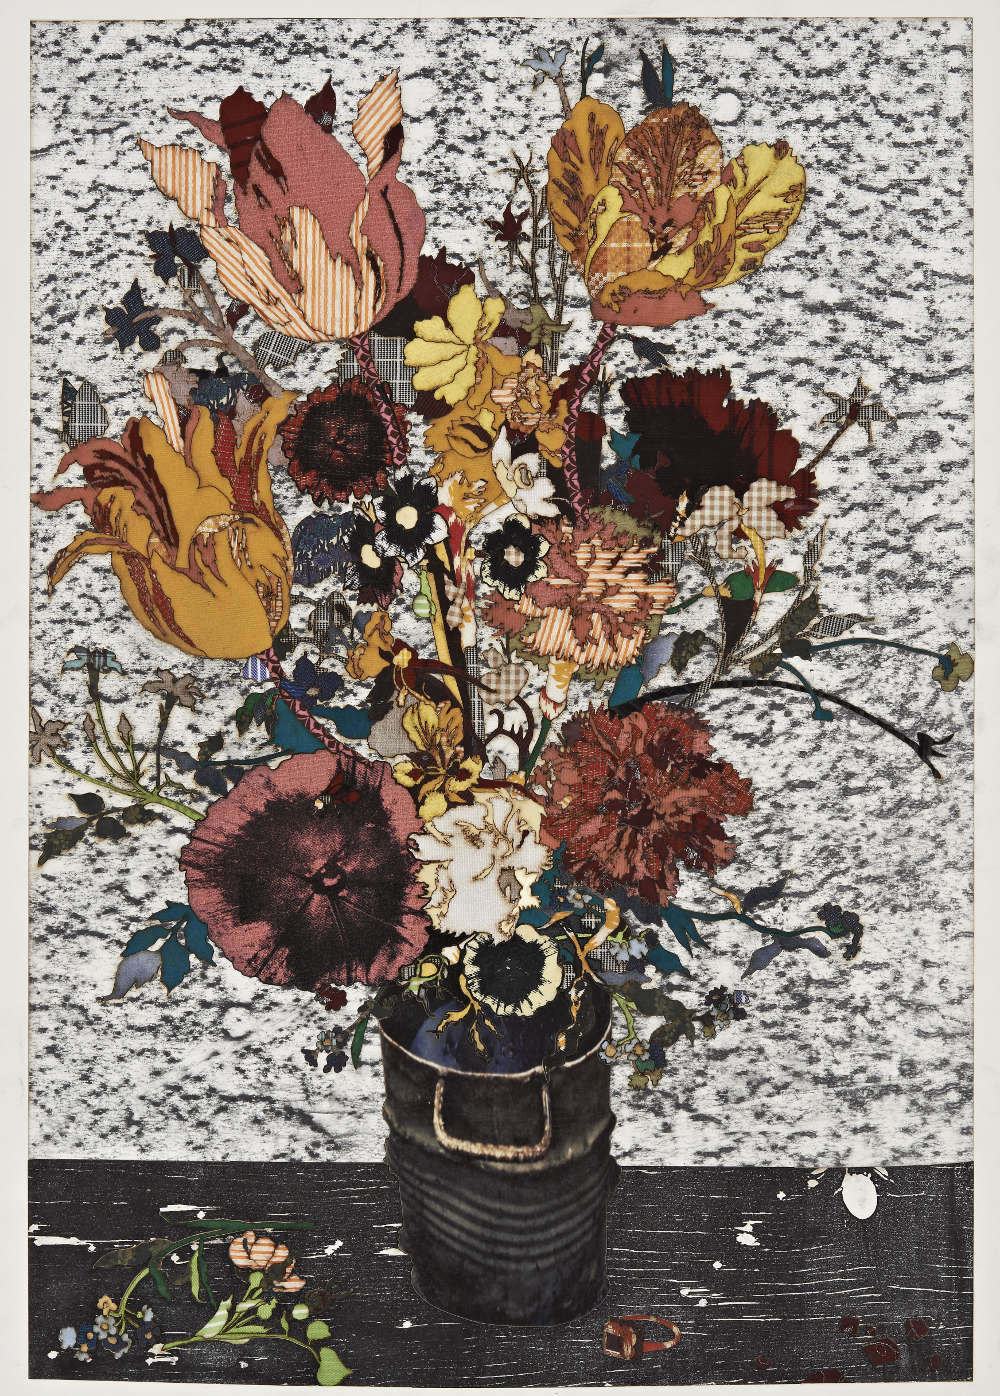 Matthew Day Jackson, Flowers in a Glass Vase (Madrid), 2018. Textile, silkscreen, pigment print on paper 76.2 x 53 cm / 30 x 20 7/8 in © Matthew Day Jackson. Courtesy of the artist and Hauser & Wirth